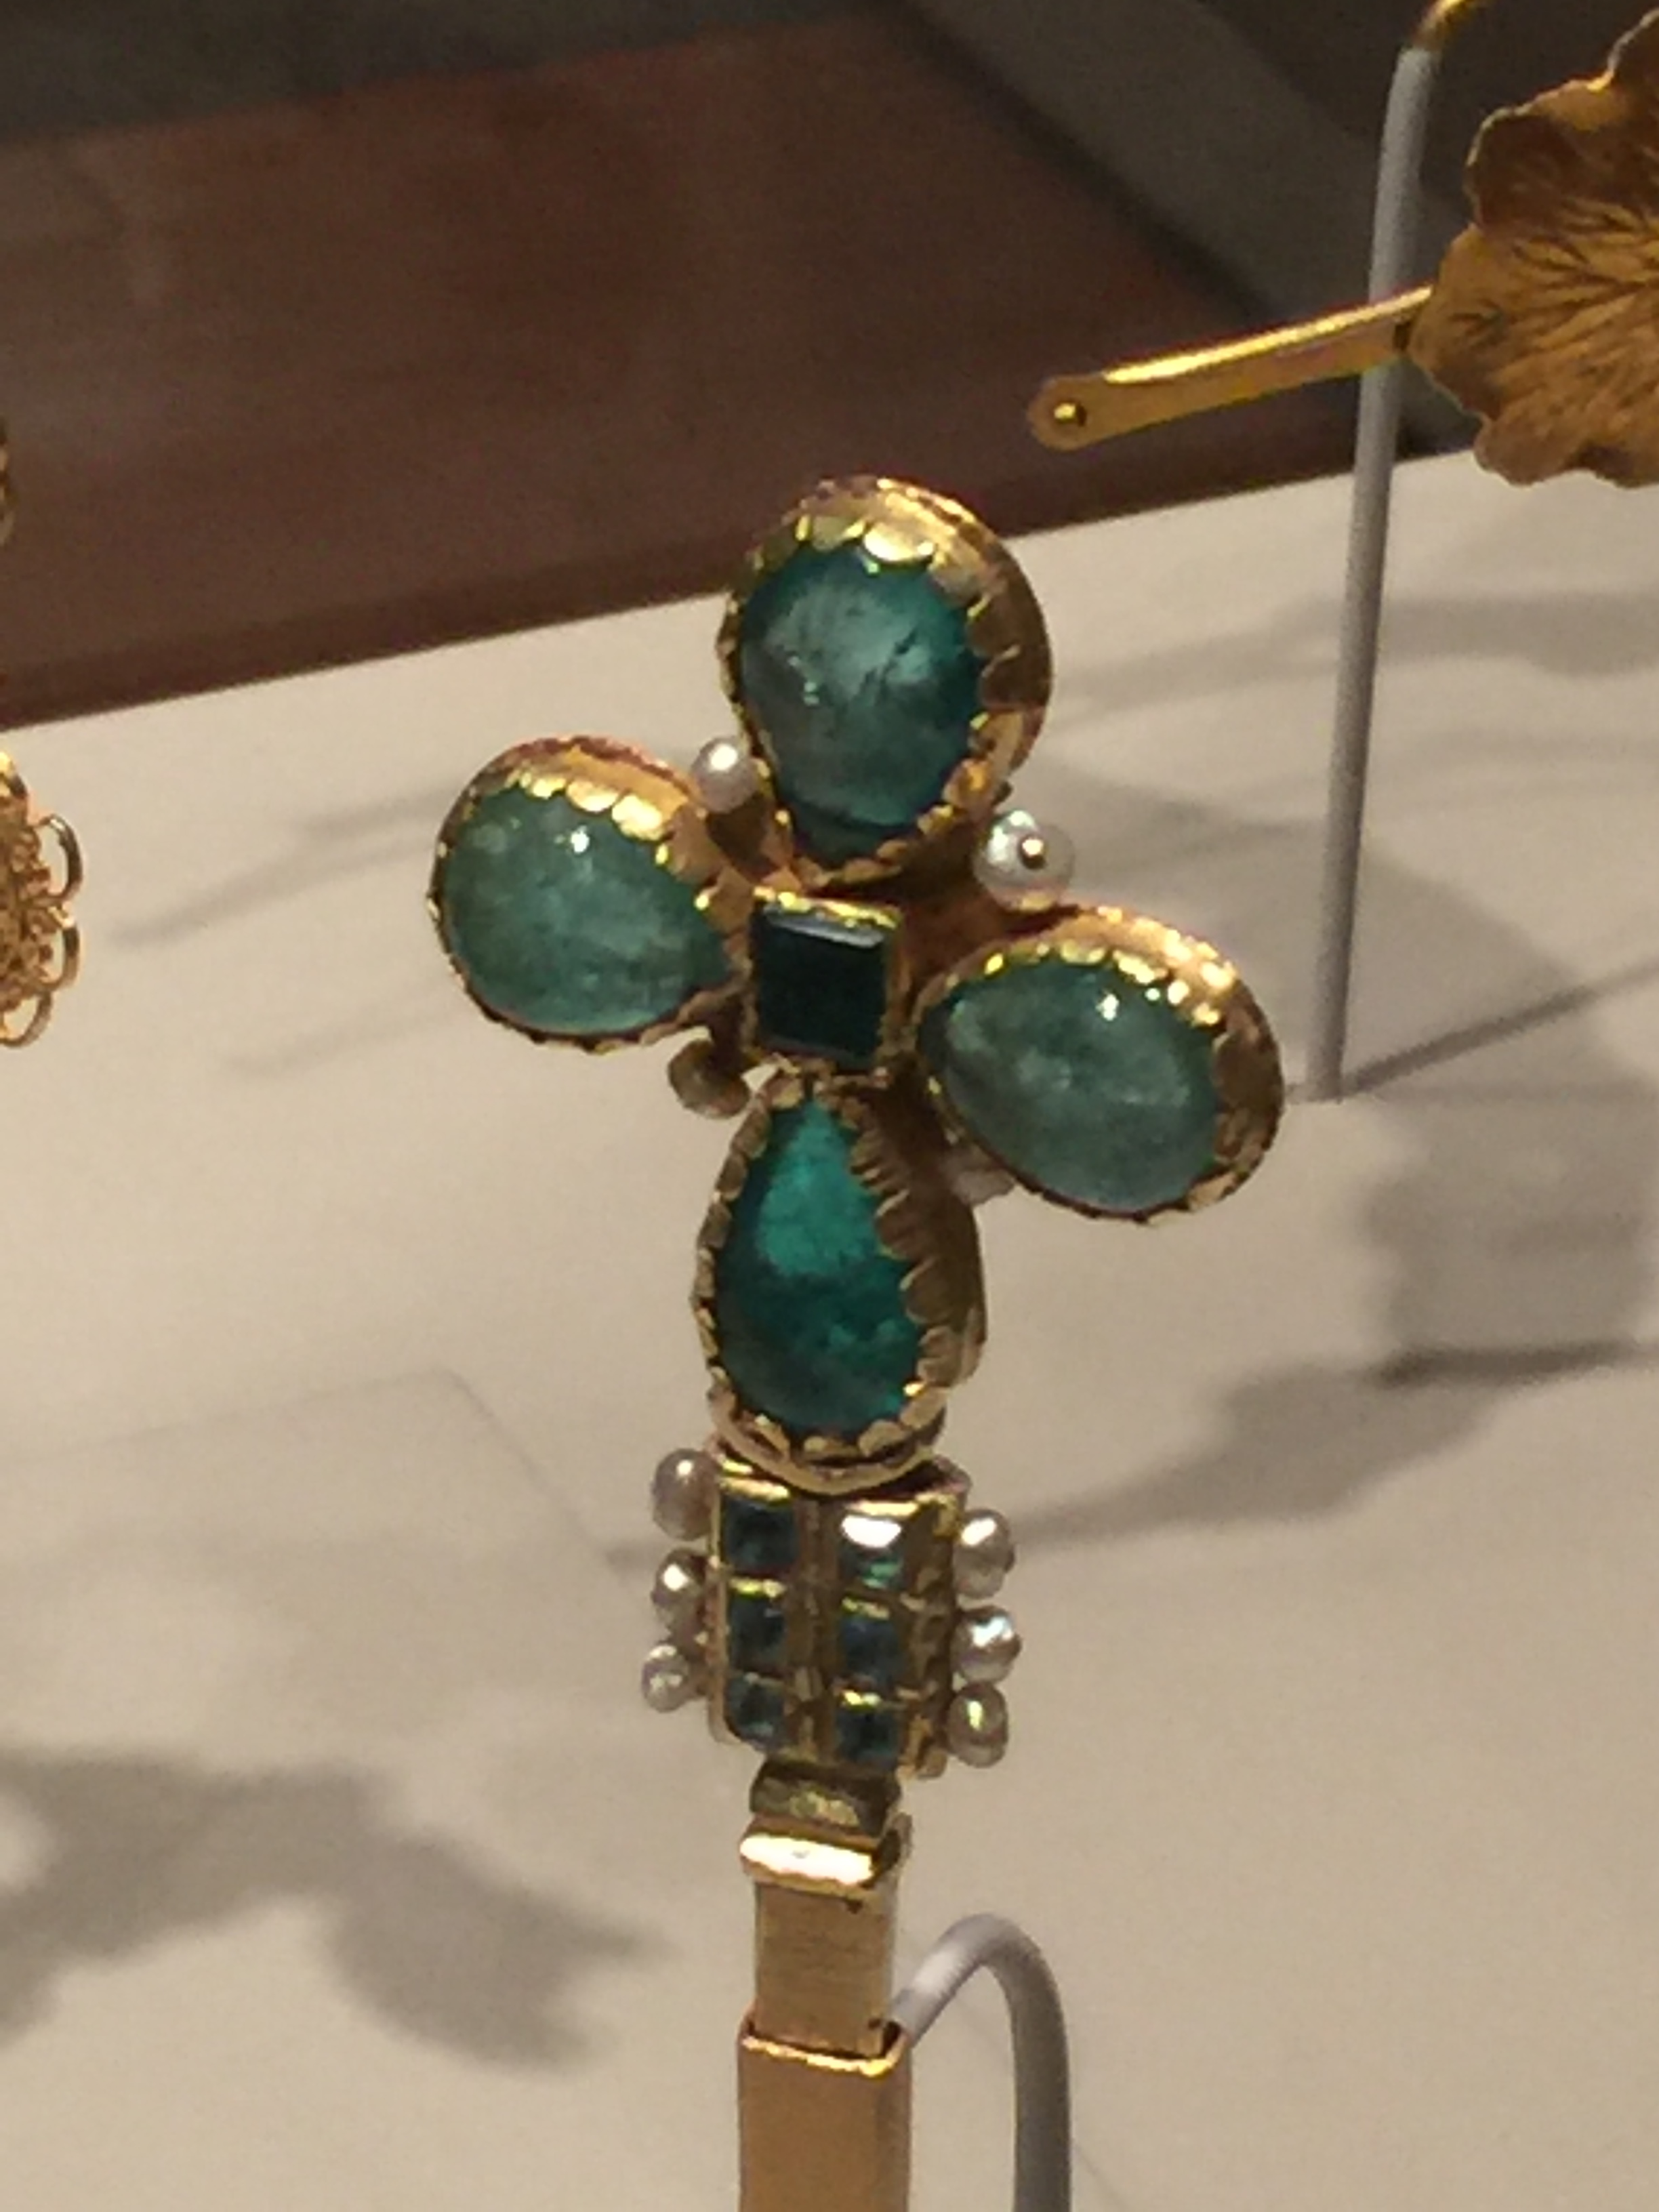 Cross finial, Colombia or Ecuador , circa 1600. Gold, emeralds, pearls. Denver Art Museum, Gift of the Stapleton Foundation of Latin American Colonial Art made possible by the Renchard family; 1990.526.